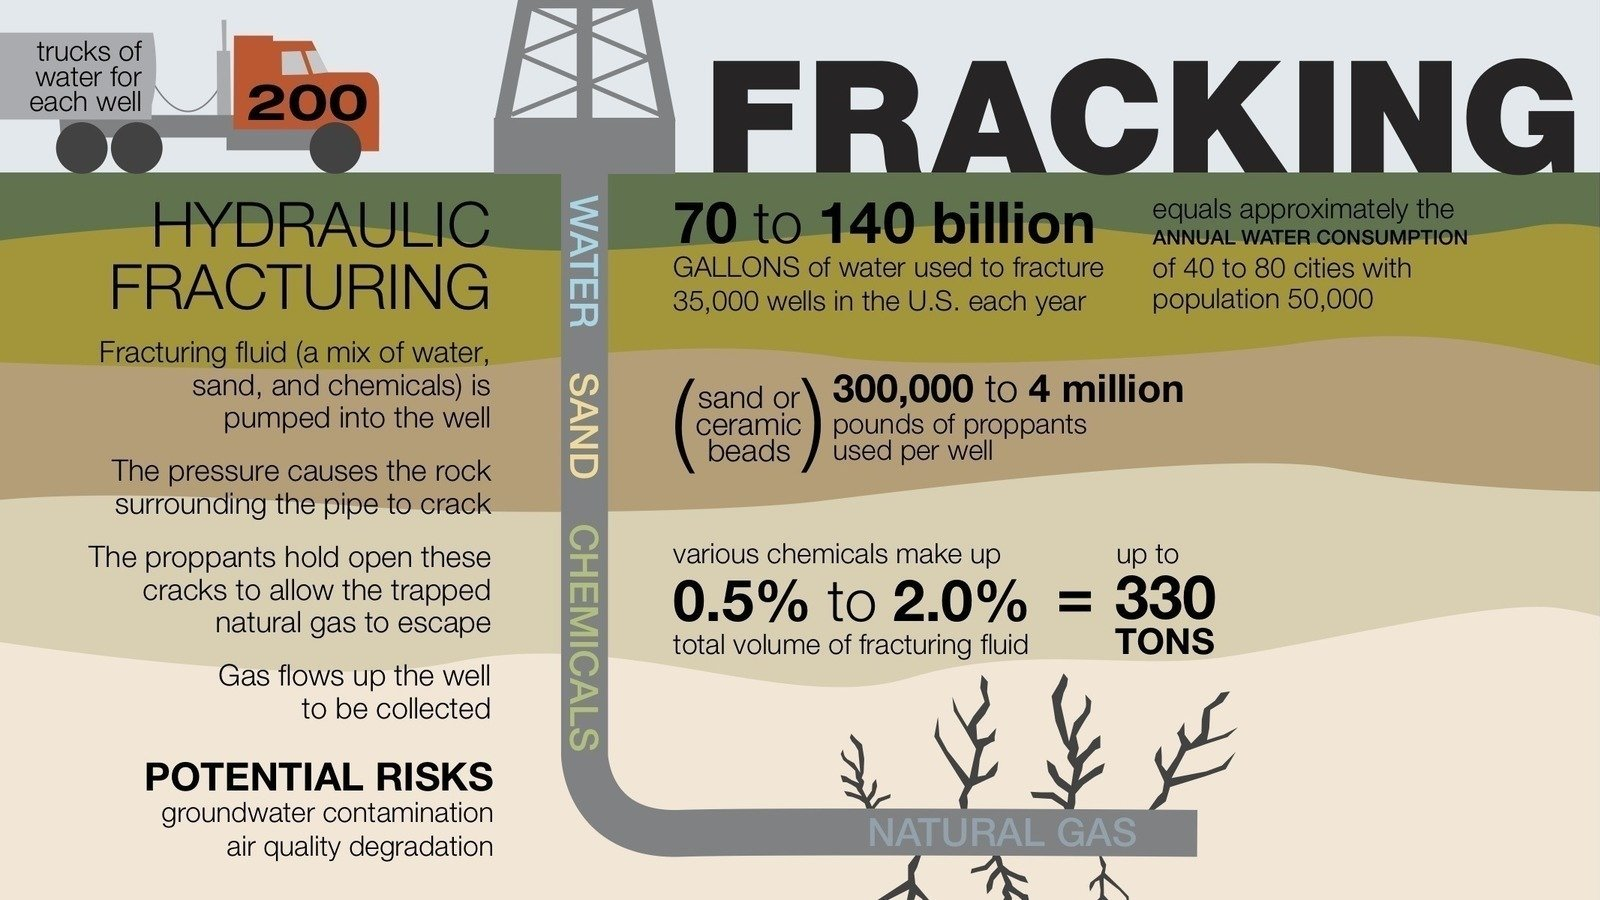 fracking natural gas and fracturing hydraulic